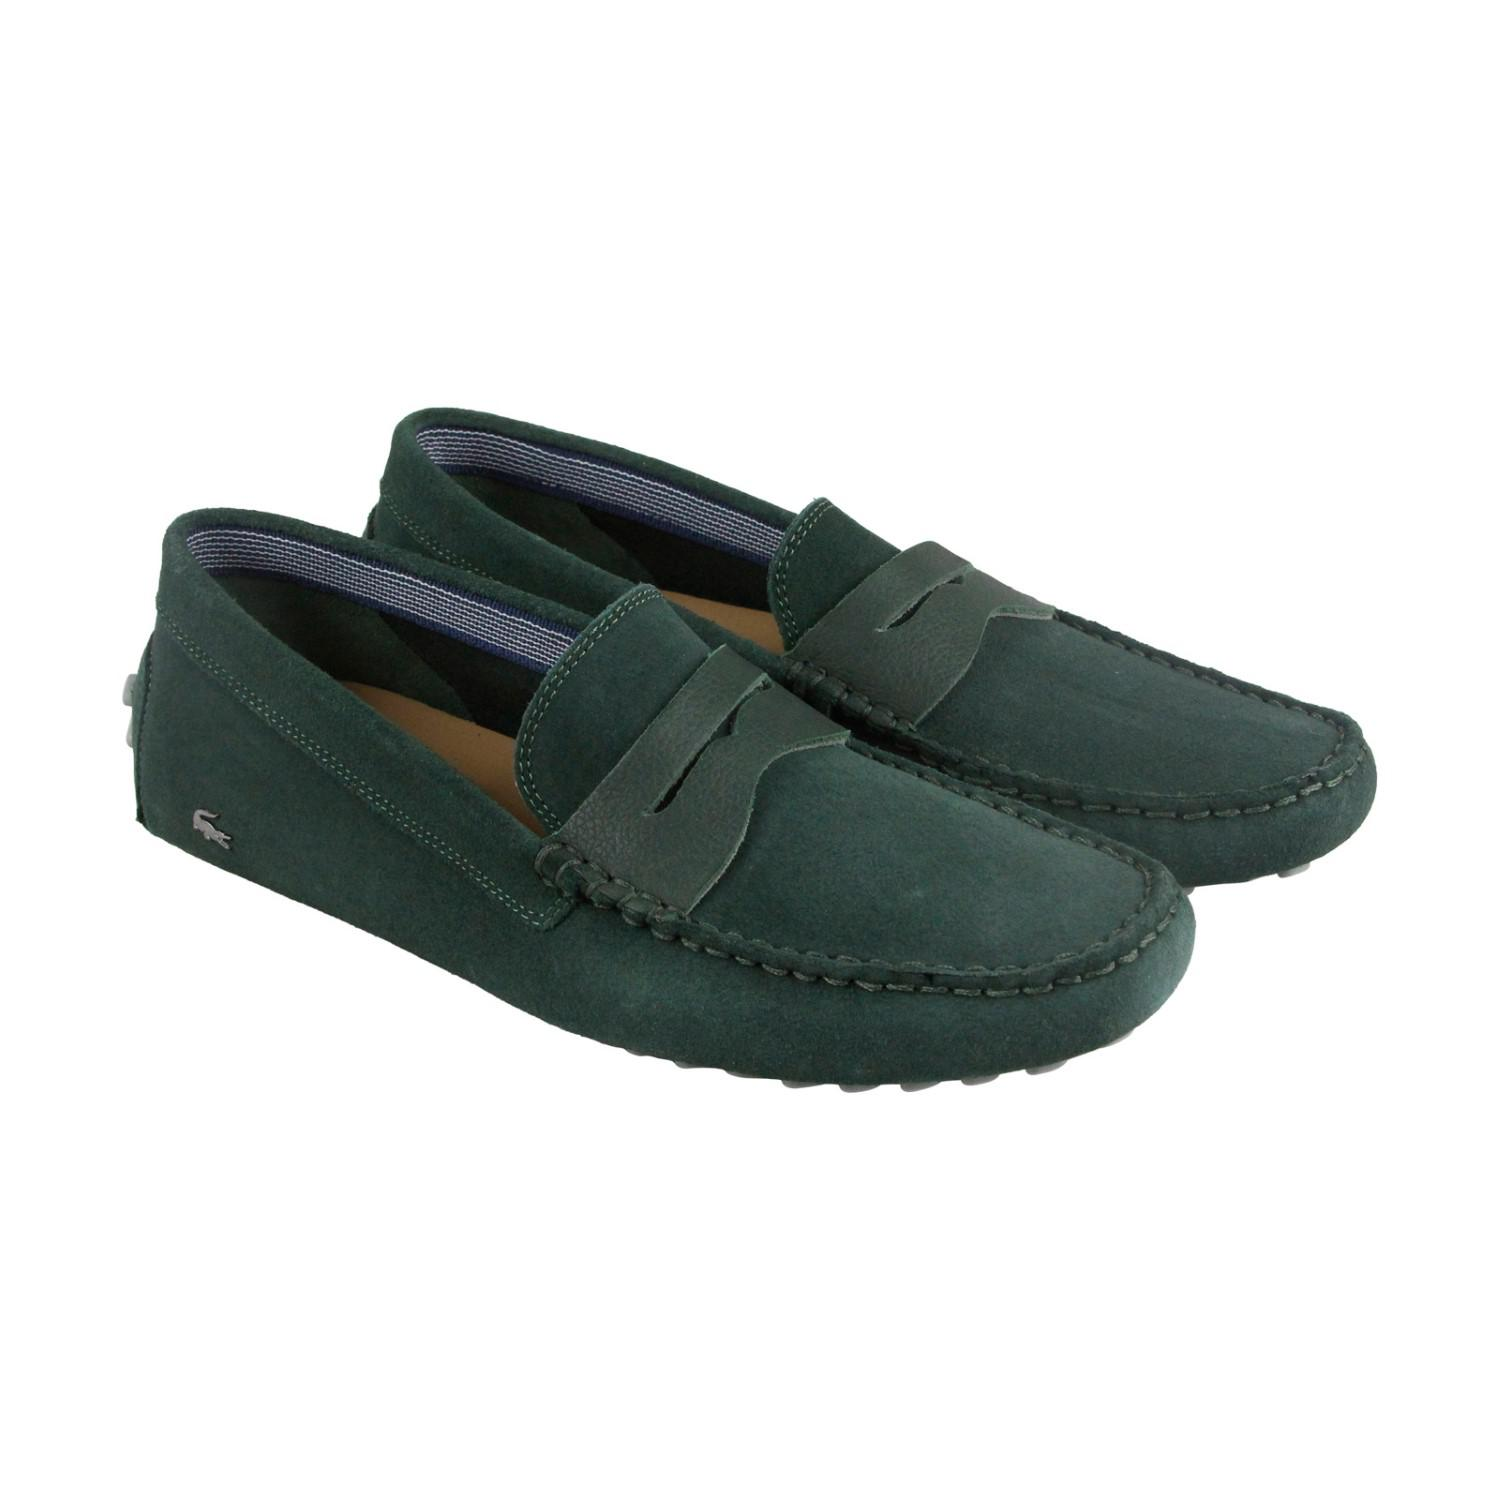 e451ec8a28f793 Lyst - Lacoste Concours 18 Srm Green Mens Casual Dress Loafers in ...